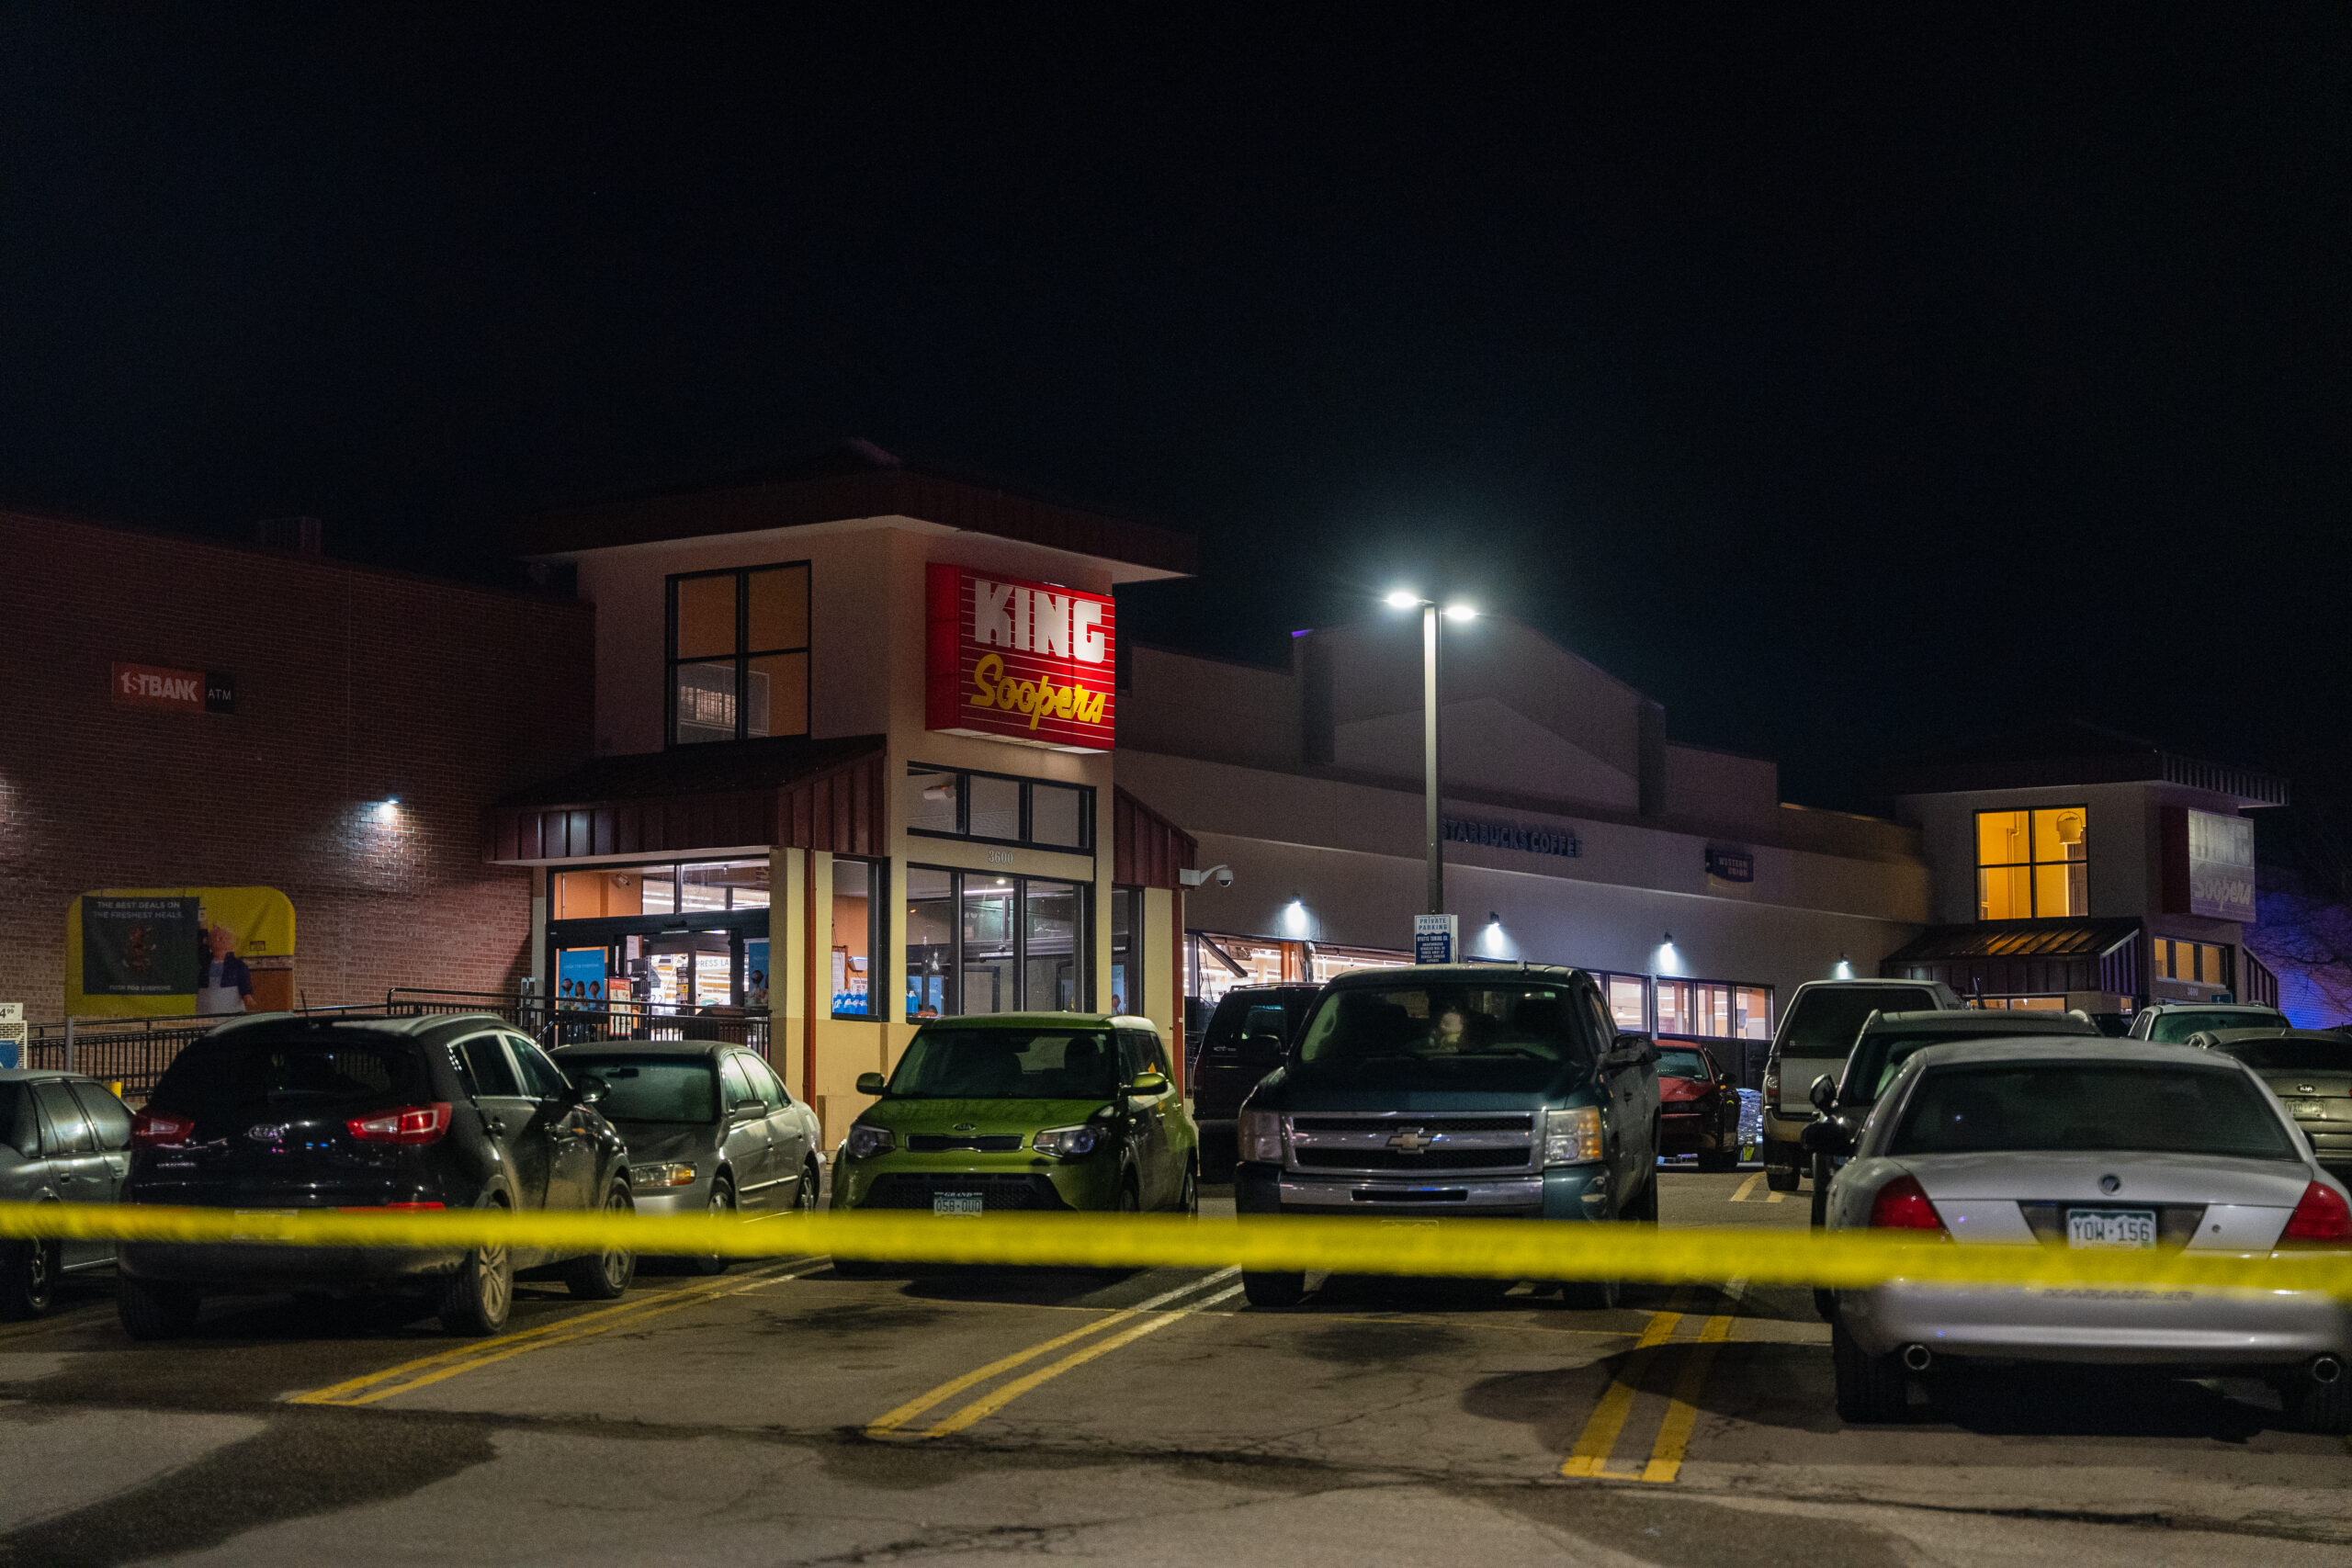 Police tape encircles the parking lot at King Soopers in Boulder, Colo., as police investigate the scene of the March 22, 2021 shooting that killed 10 people.